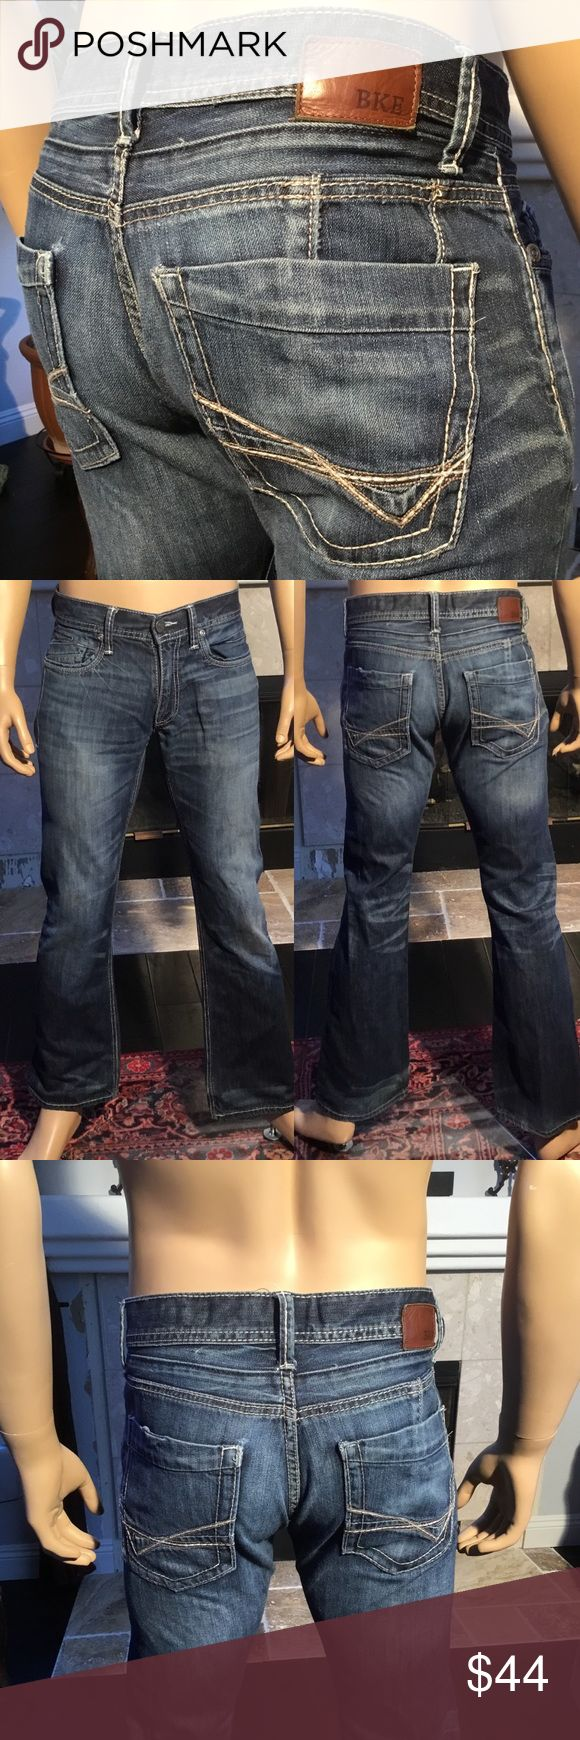 BUCKLE BKE Carter Bootcut Jeans Mens 30R (834) BUCKLE BKE Carter Bootcut Thick Stitch Denim Jeans Mens Distressed  Size men's 30R Approximate measurements are inseam 32, waist 16, rise 9 In excellent used condition  Factory distressed  From a smoke free home (834) BKE Jeans Bootcut